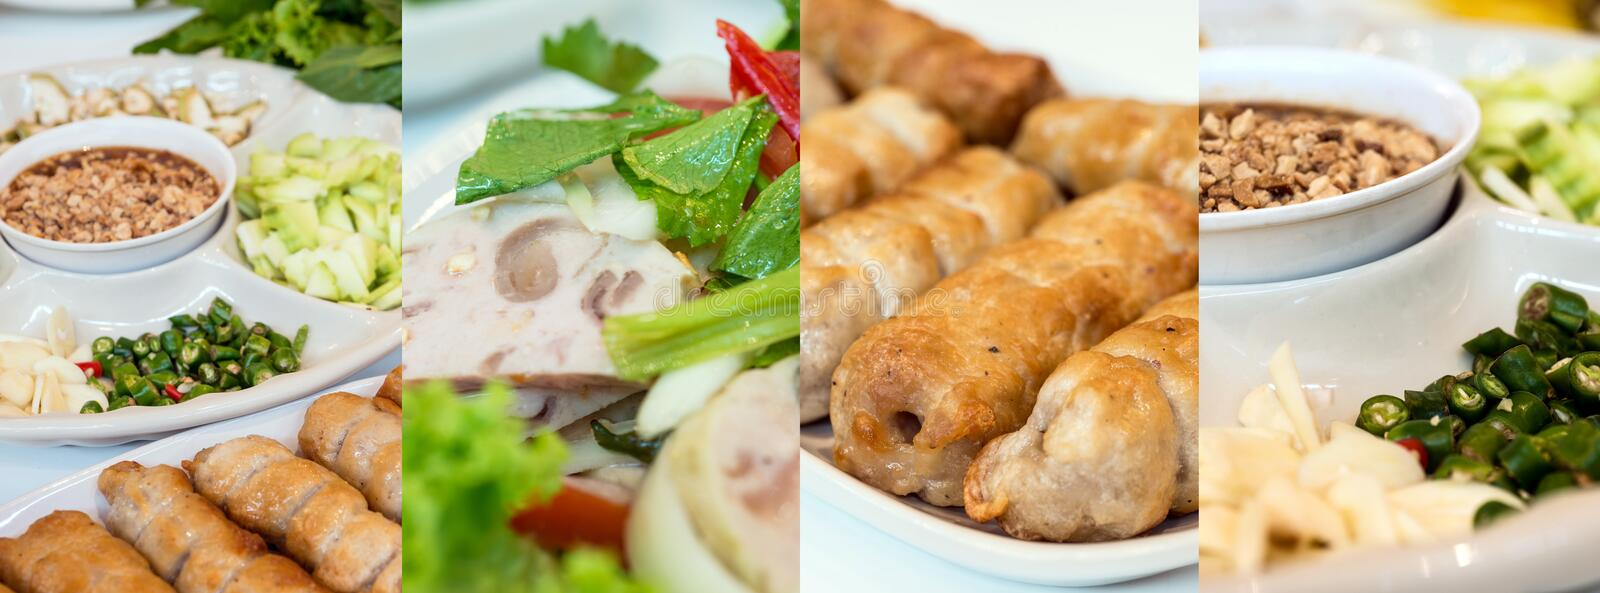 Collage photos of Vietnamese food royalty free stock image